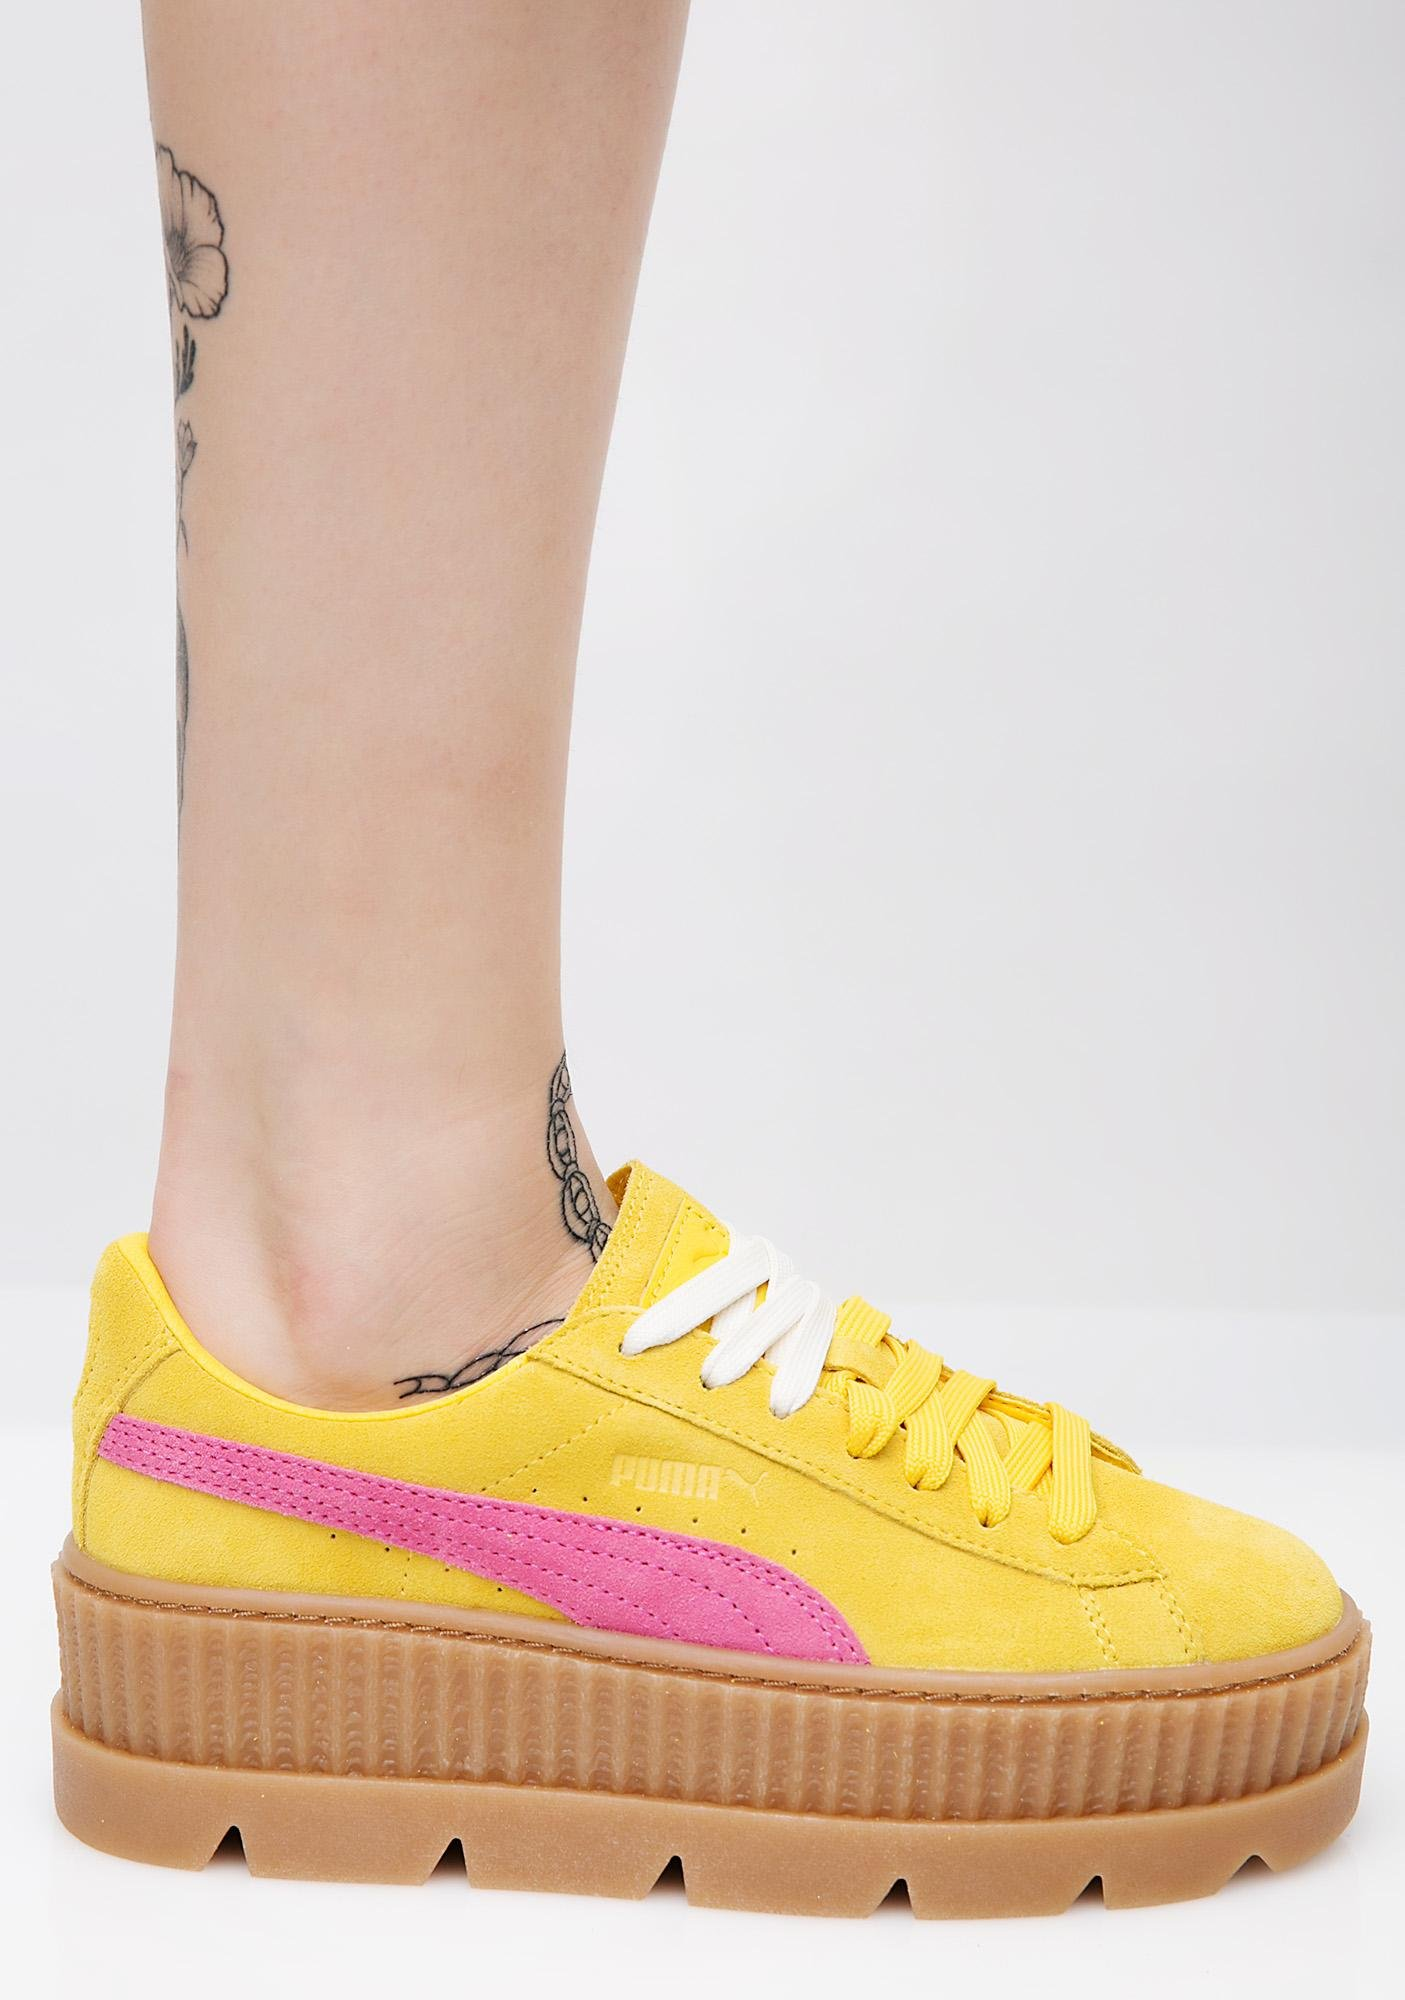 PUMA Lemon FENTY PUMA By Rihanna Cleated Suede Creepers